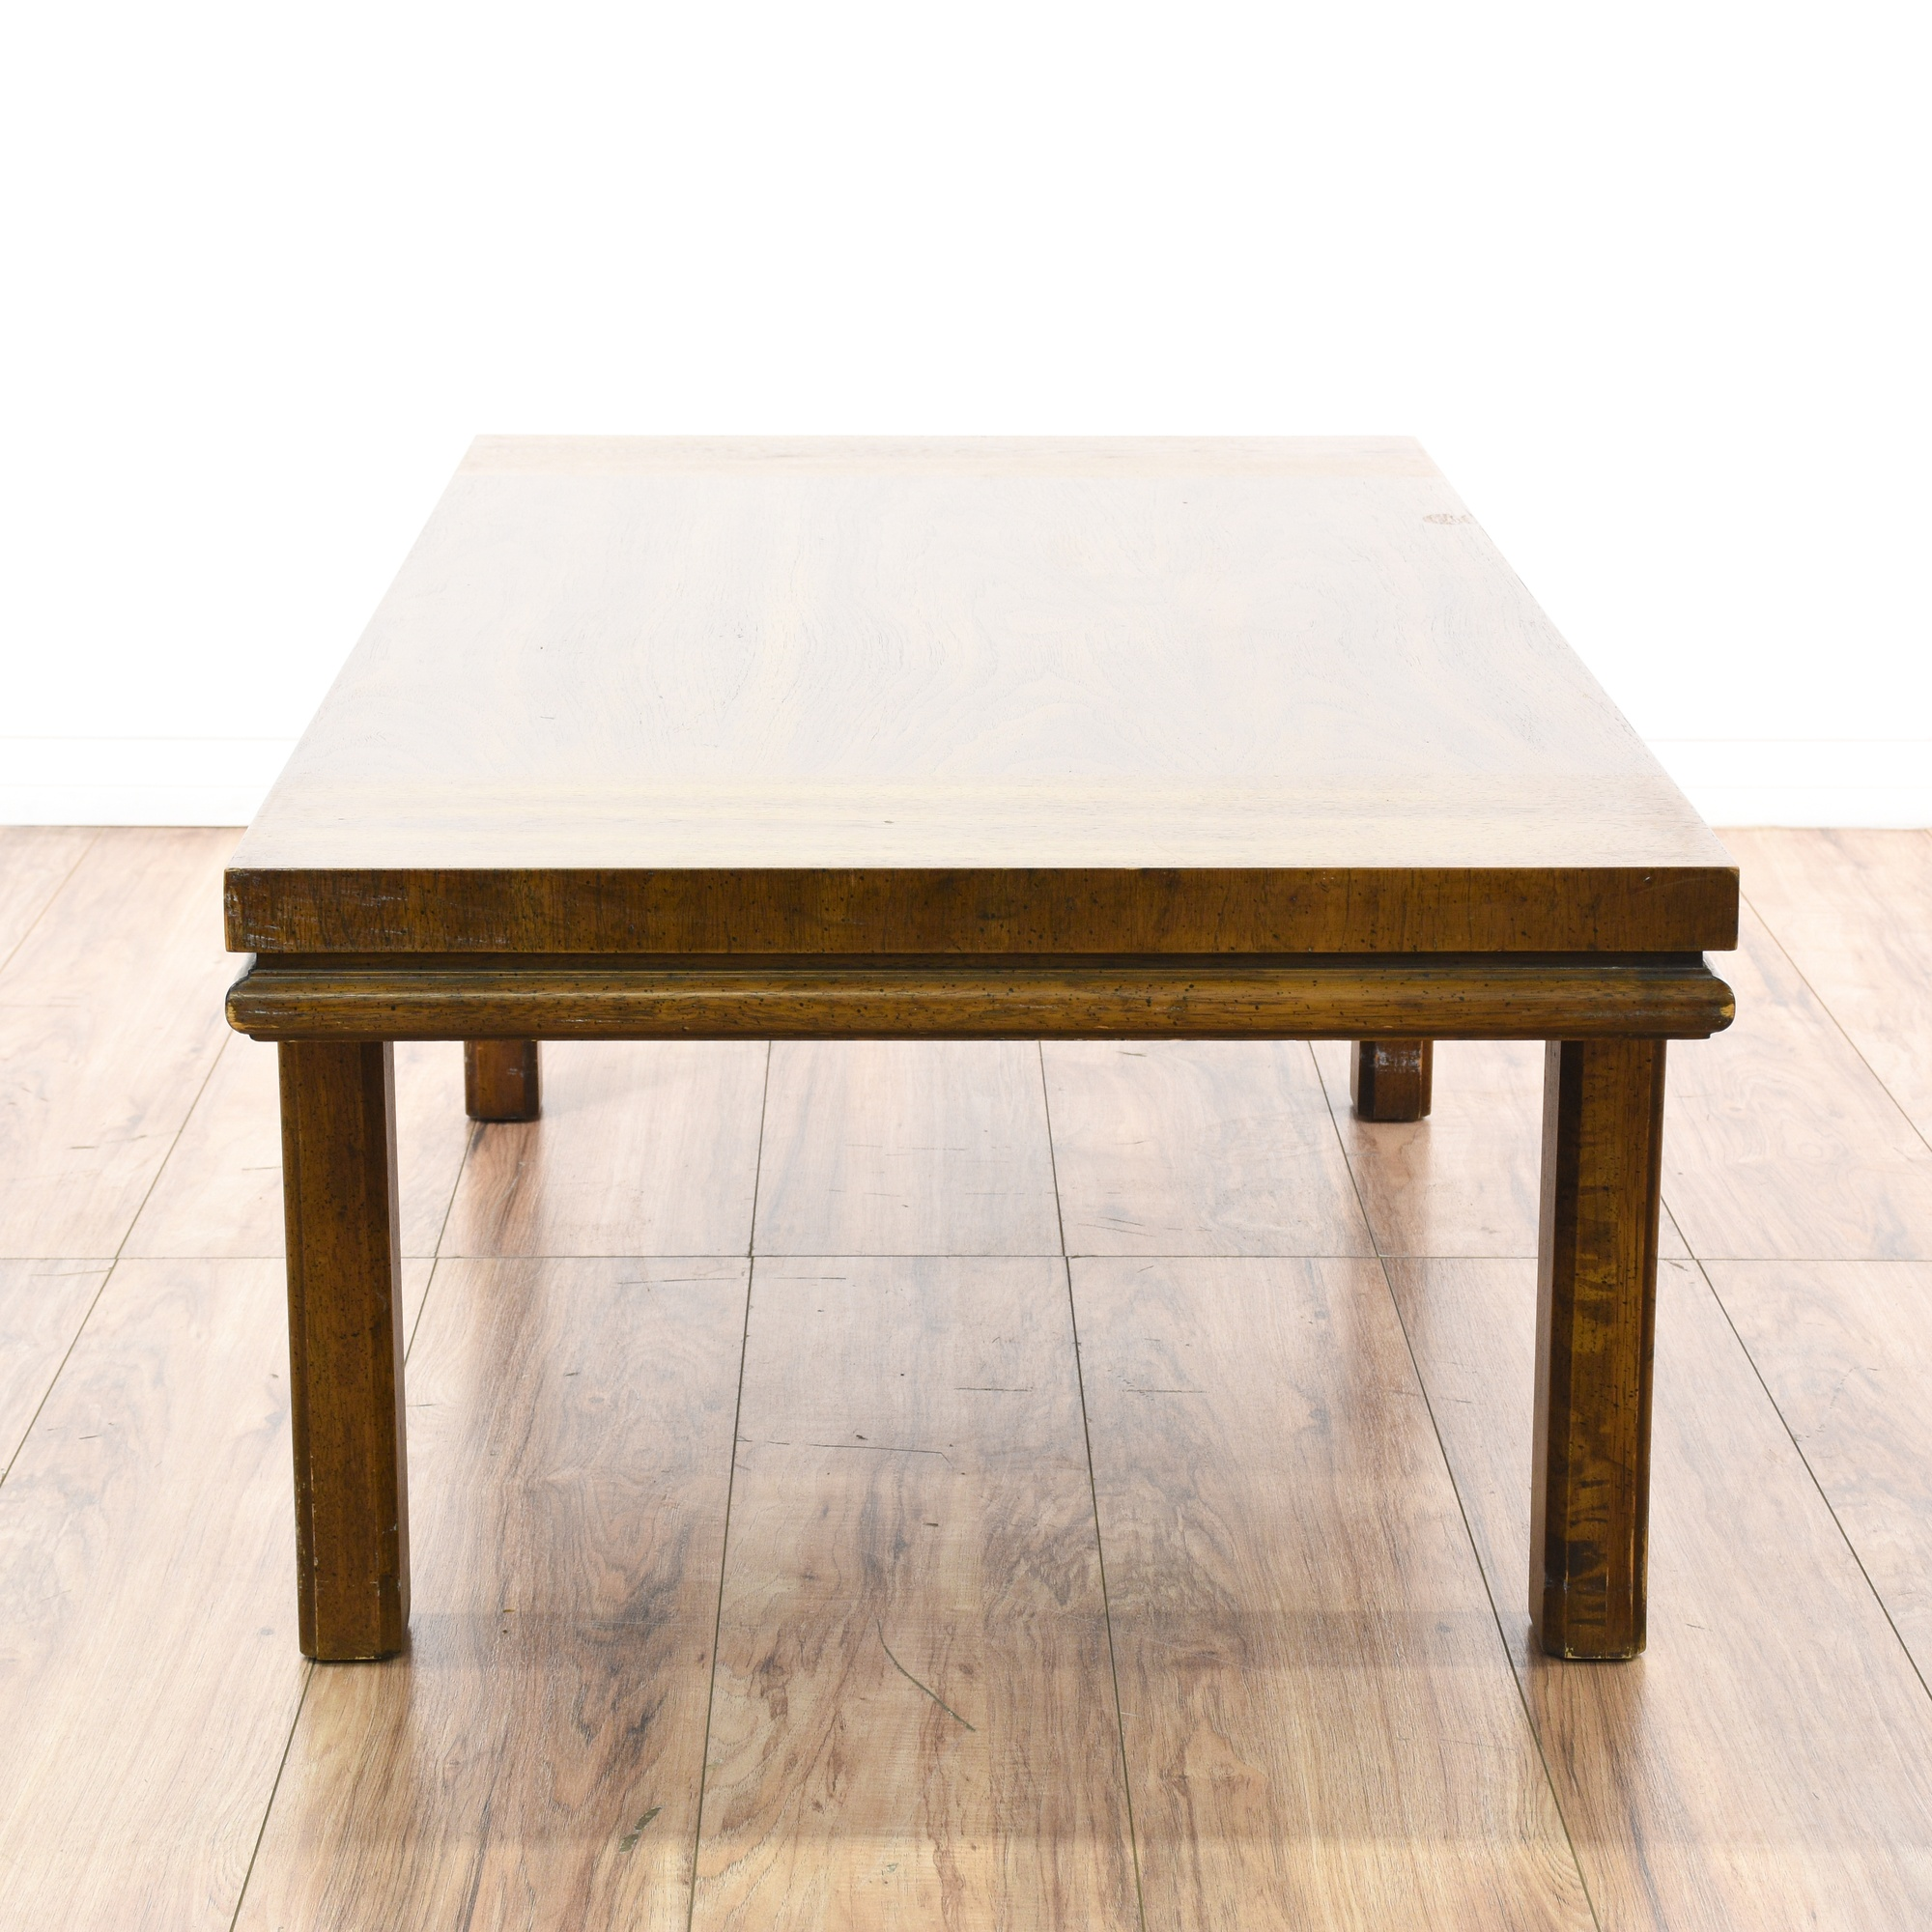 """Drexel Heritage Accolade"" Campaign Coffee Table"